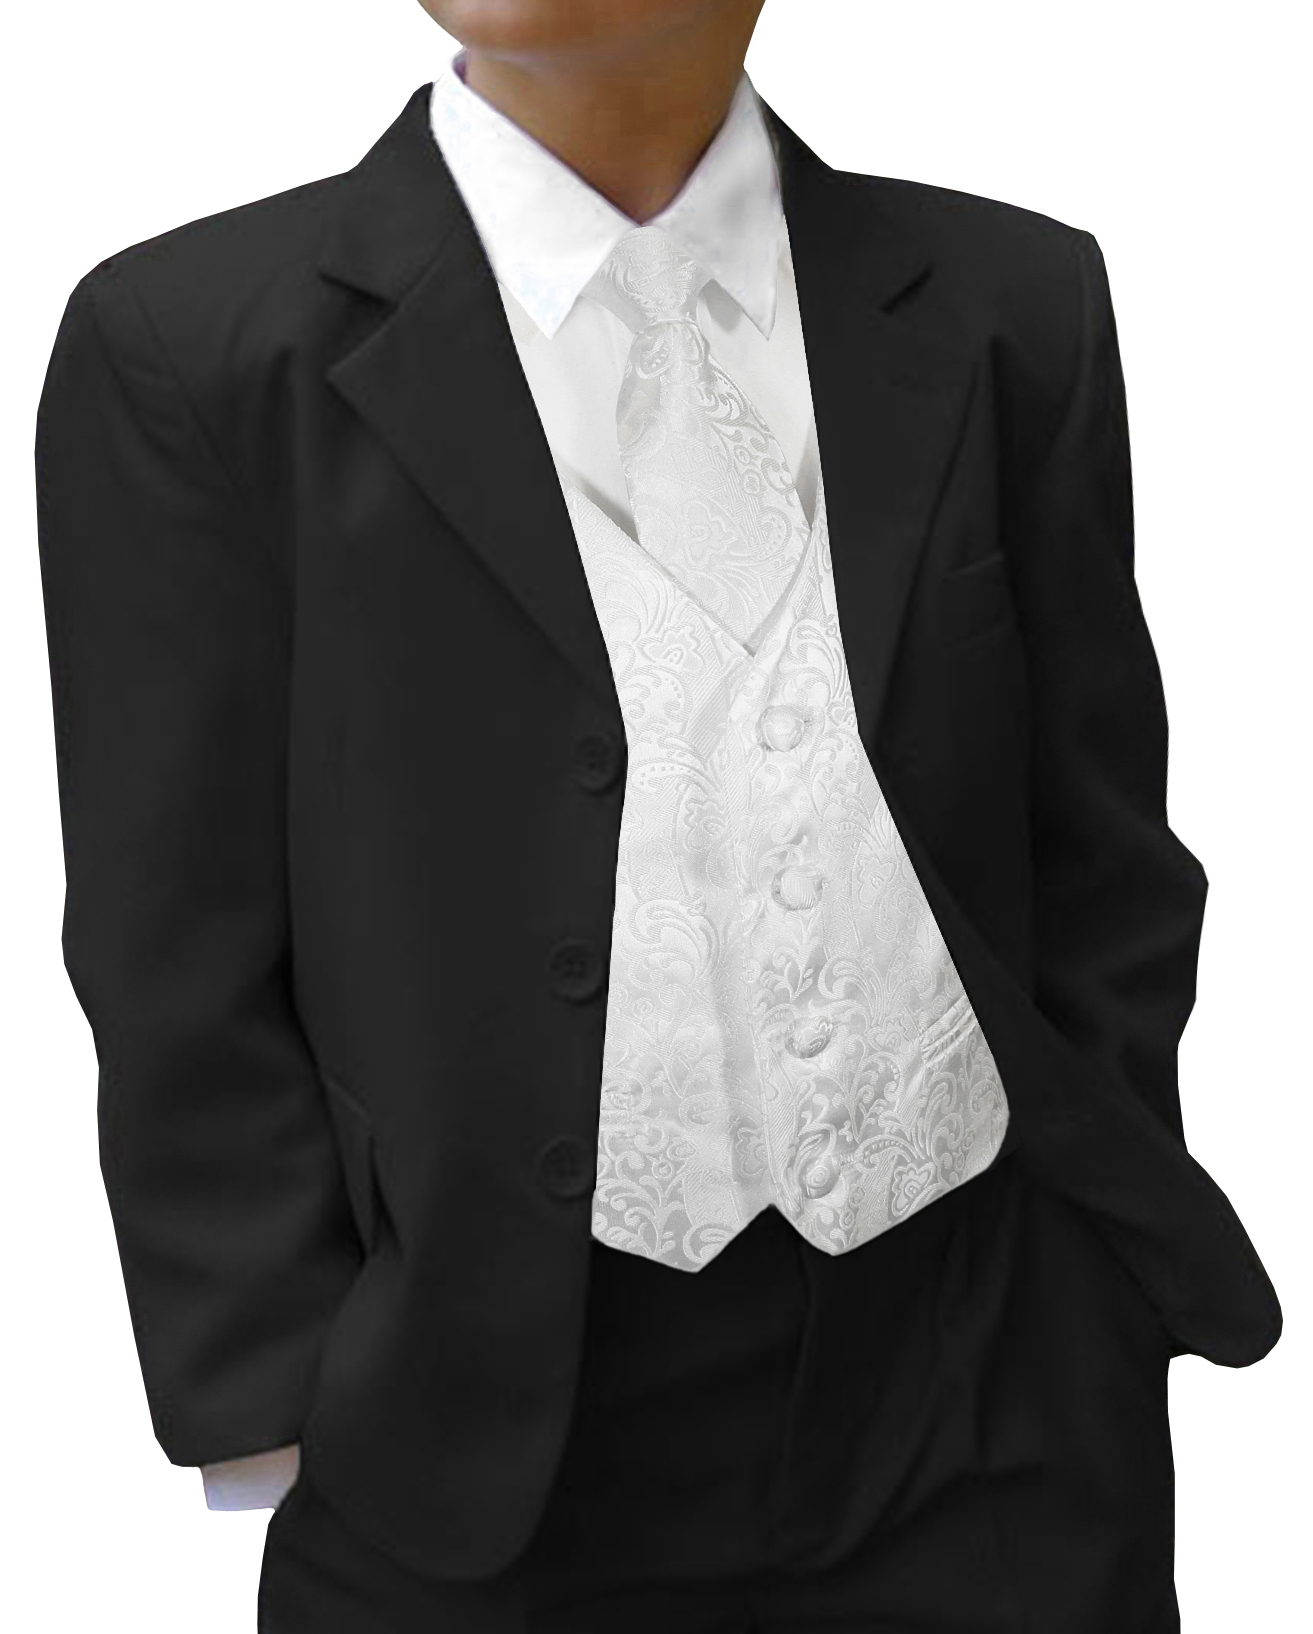 Wedding Tuxedo Black With Boys Suit Black White Paul